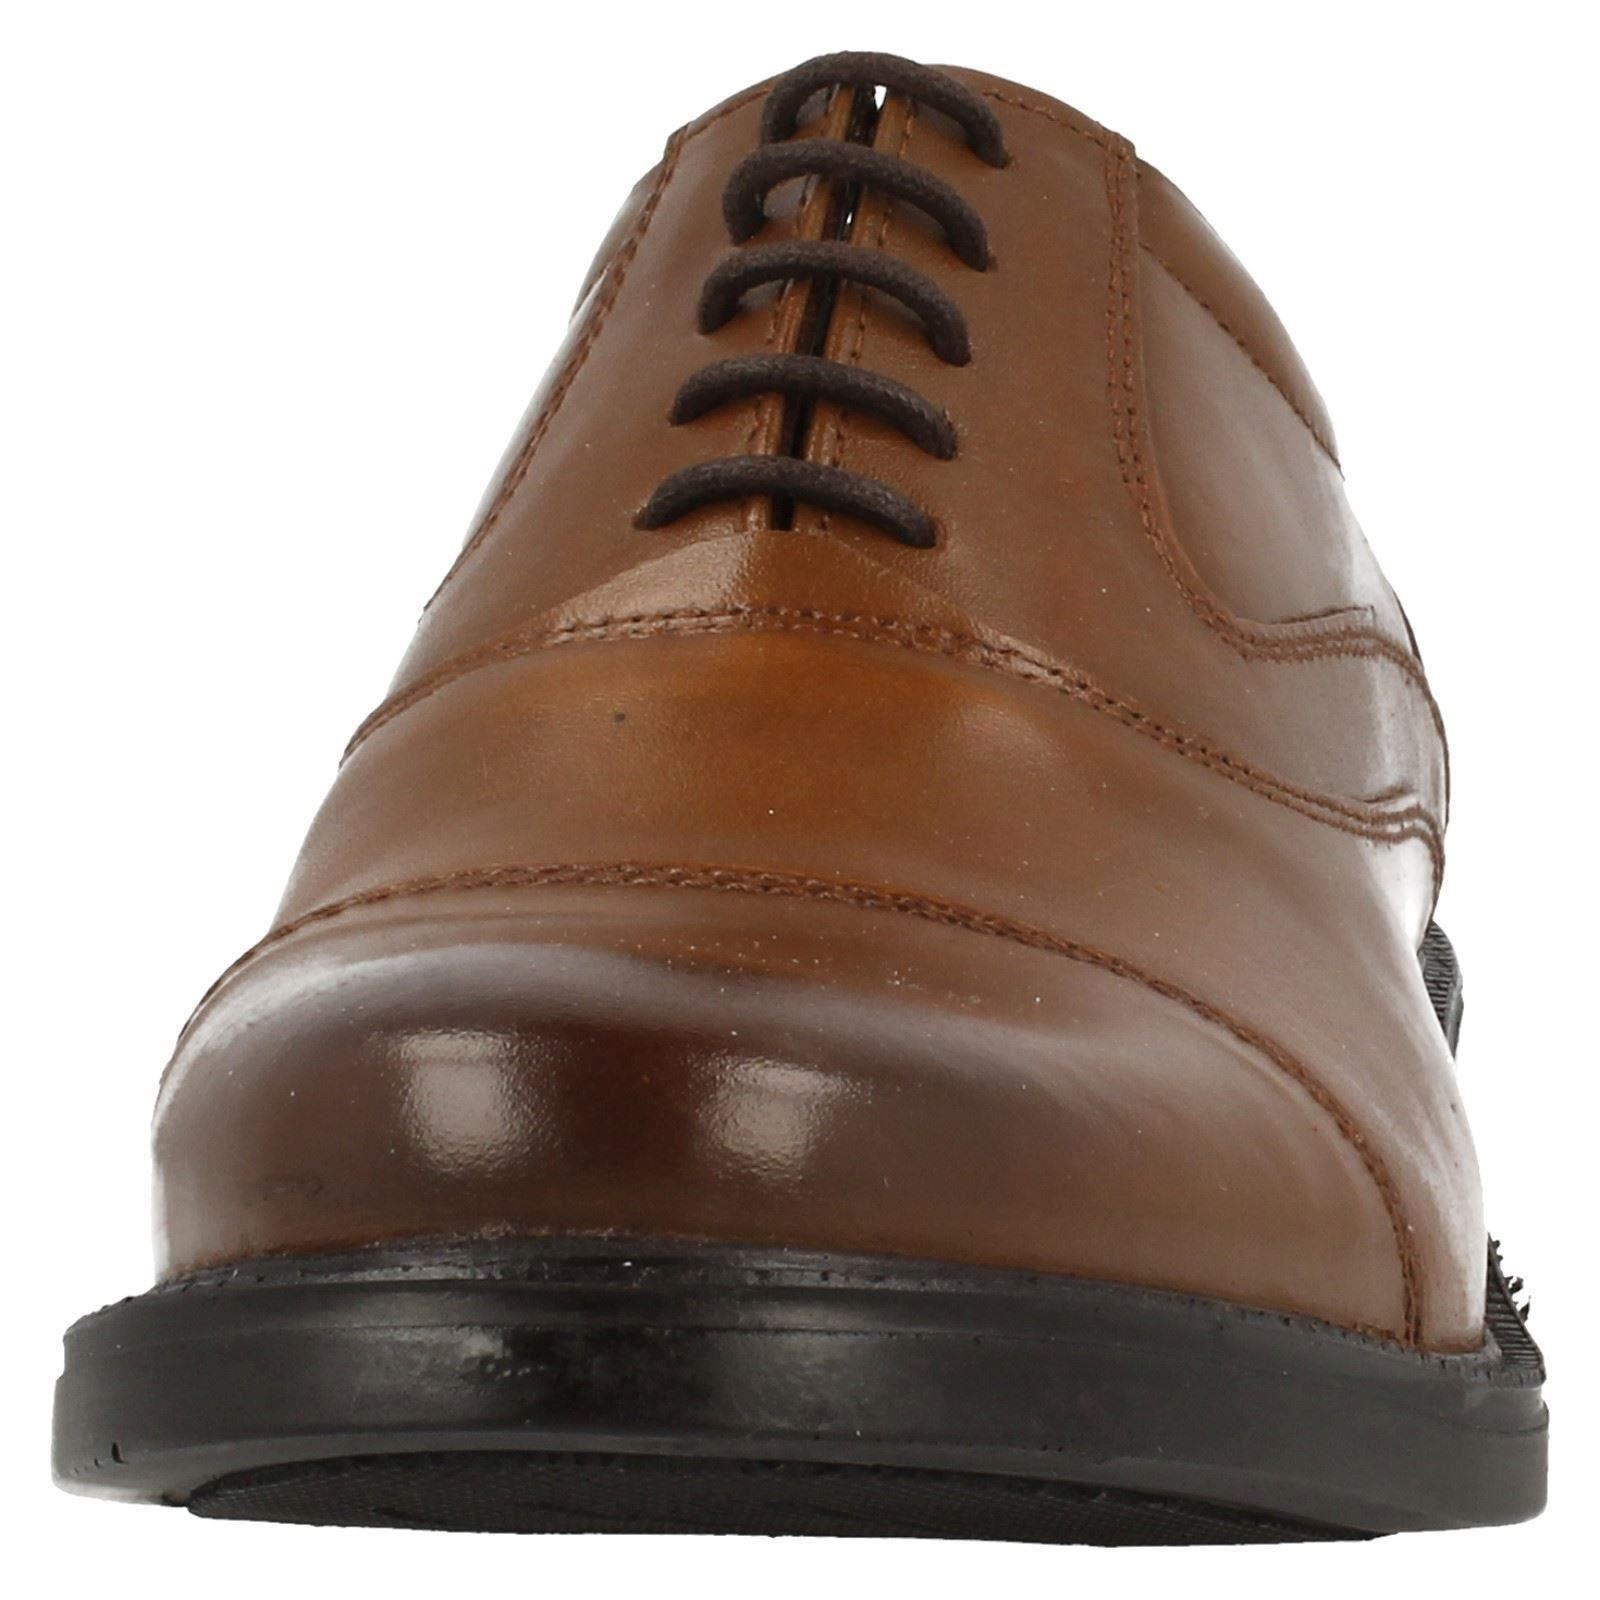 Mens Hush Puppies Formal Lace Up Leather Shoes Rockford